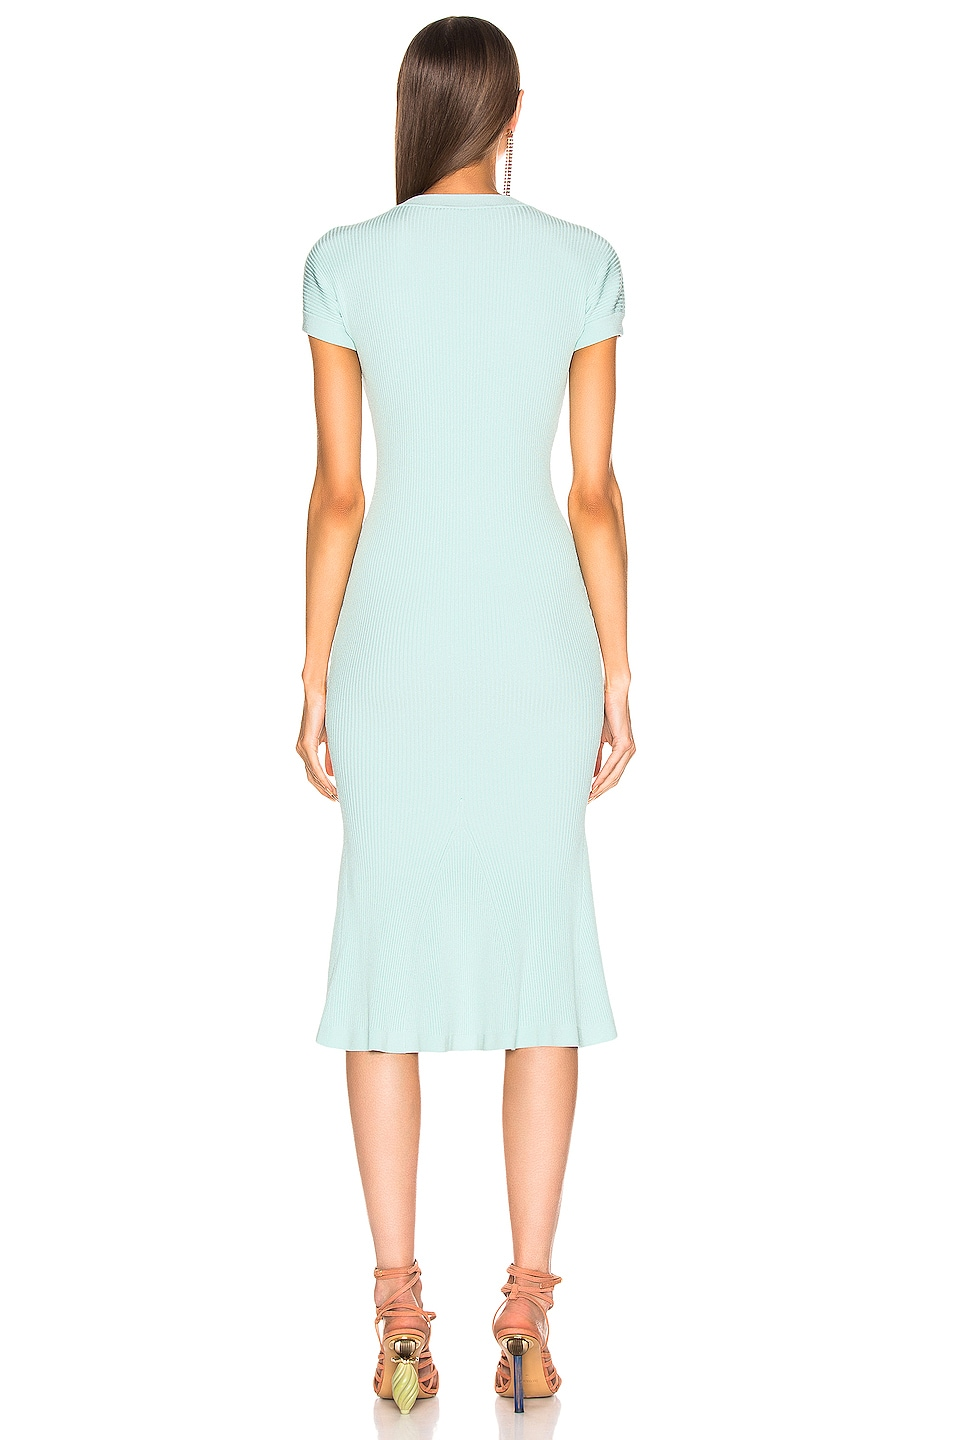 Image 3 of Brandon Maxwell Shortsleeve Knit Fit & Flare Dress in Aqua Blue